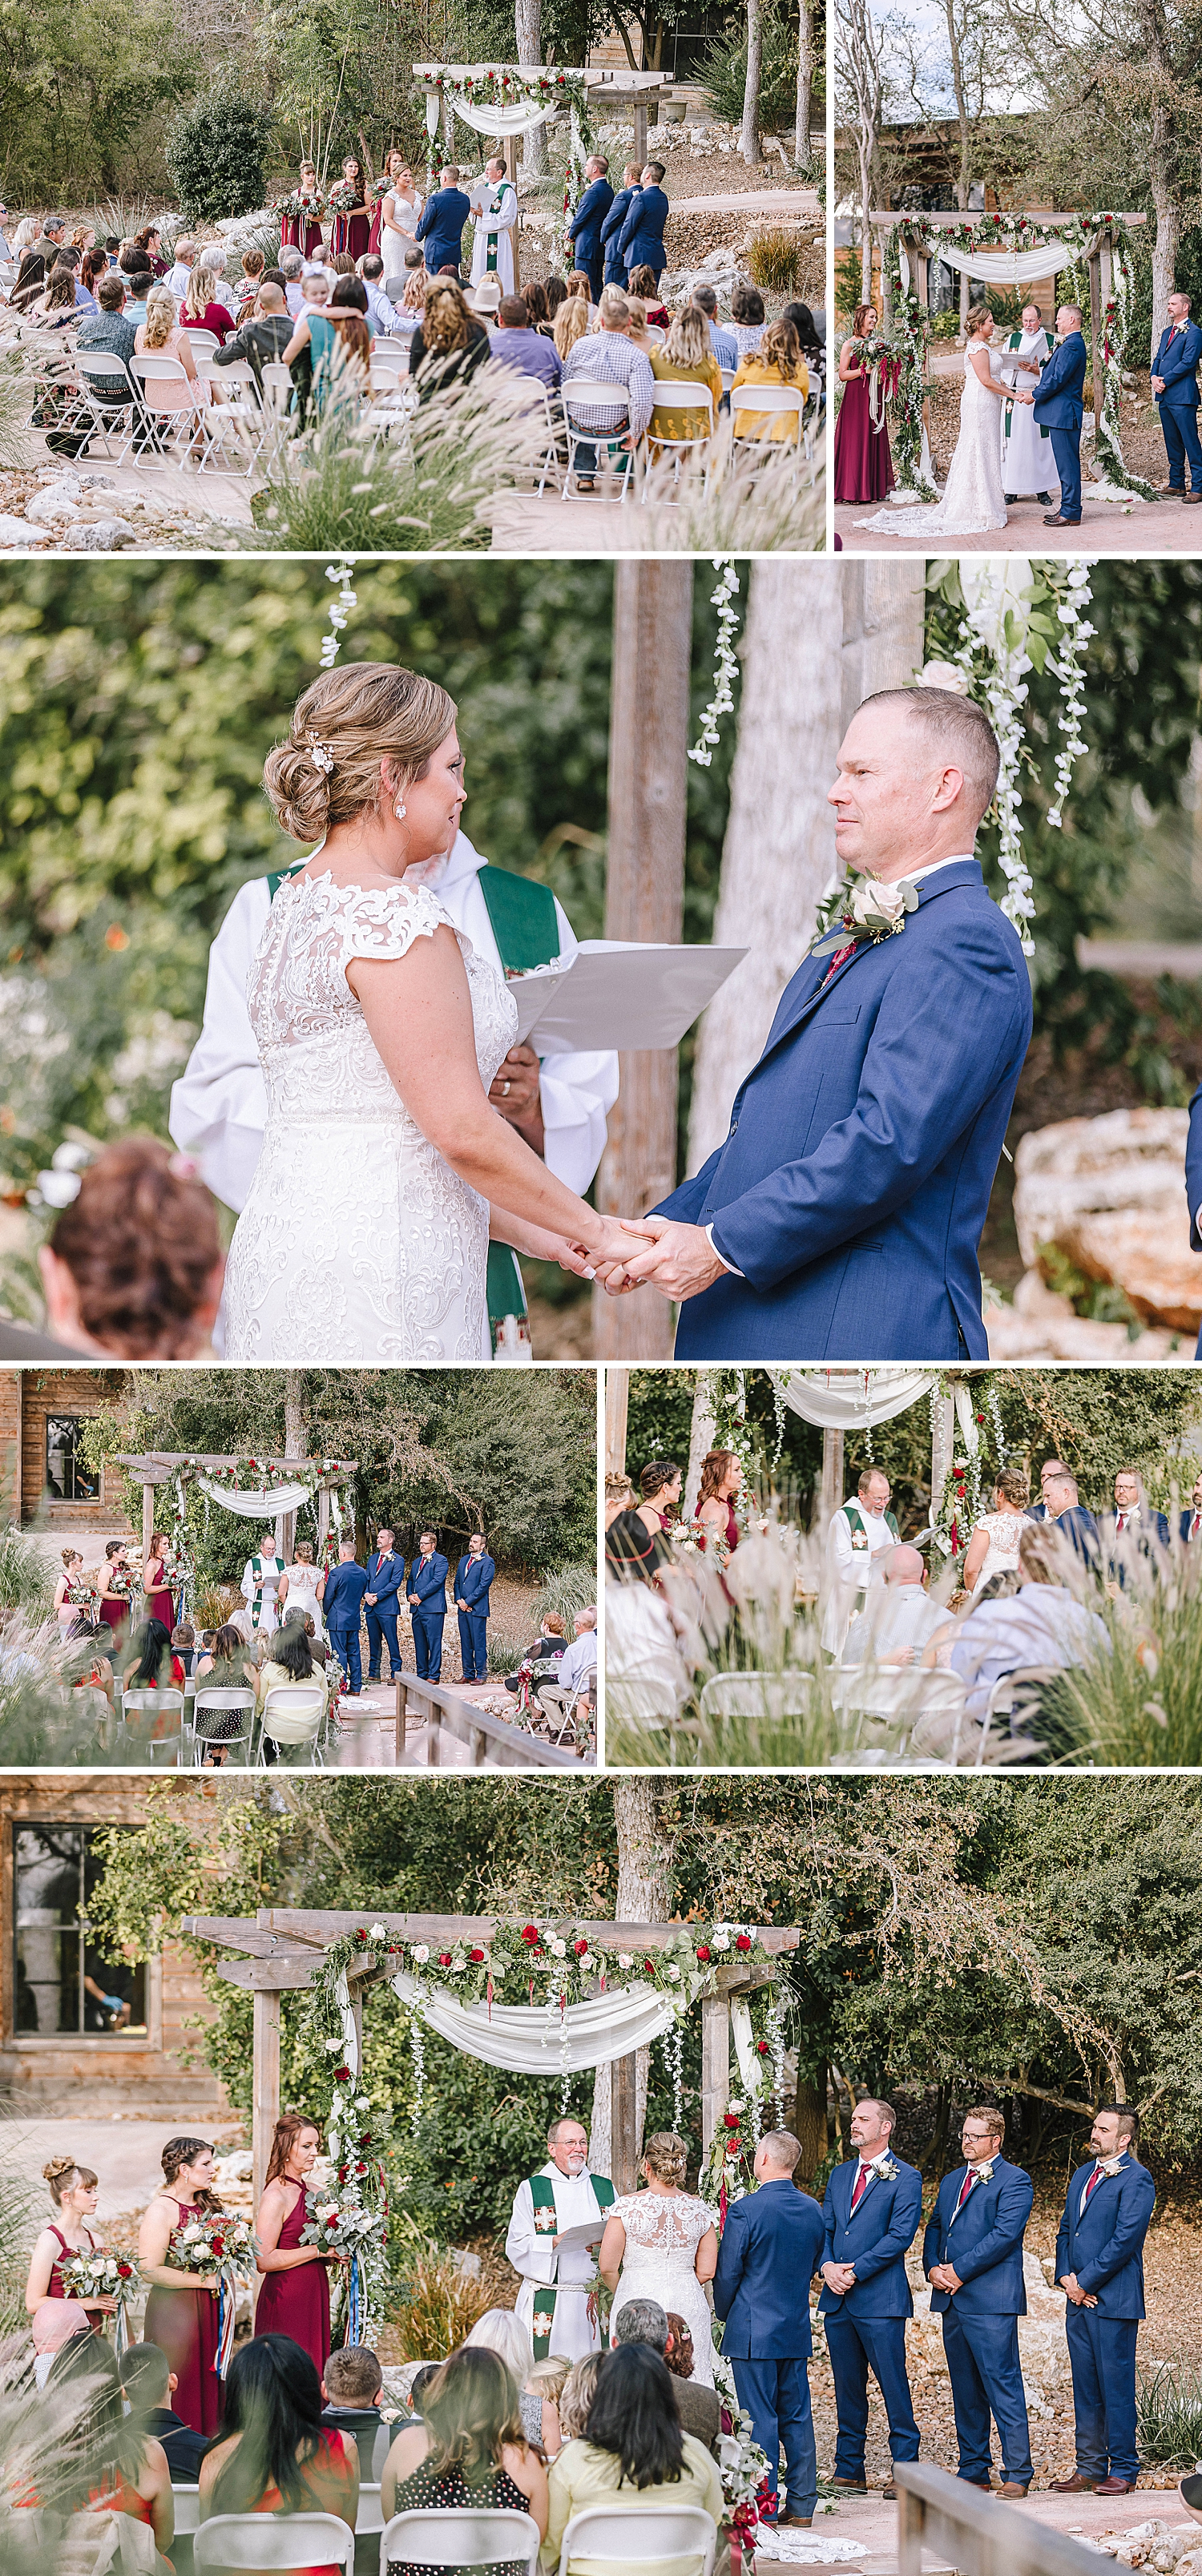 Geronimo-Oaks-Wedding-Venue-Seguin-Texas-Elegant-Navy-Burgundy-Wedding-Carly-Barton-Photography_0027.jpg